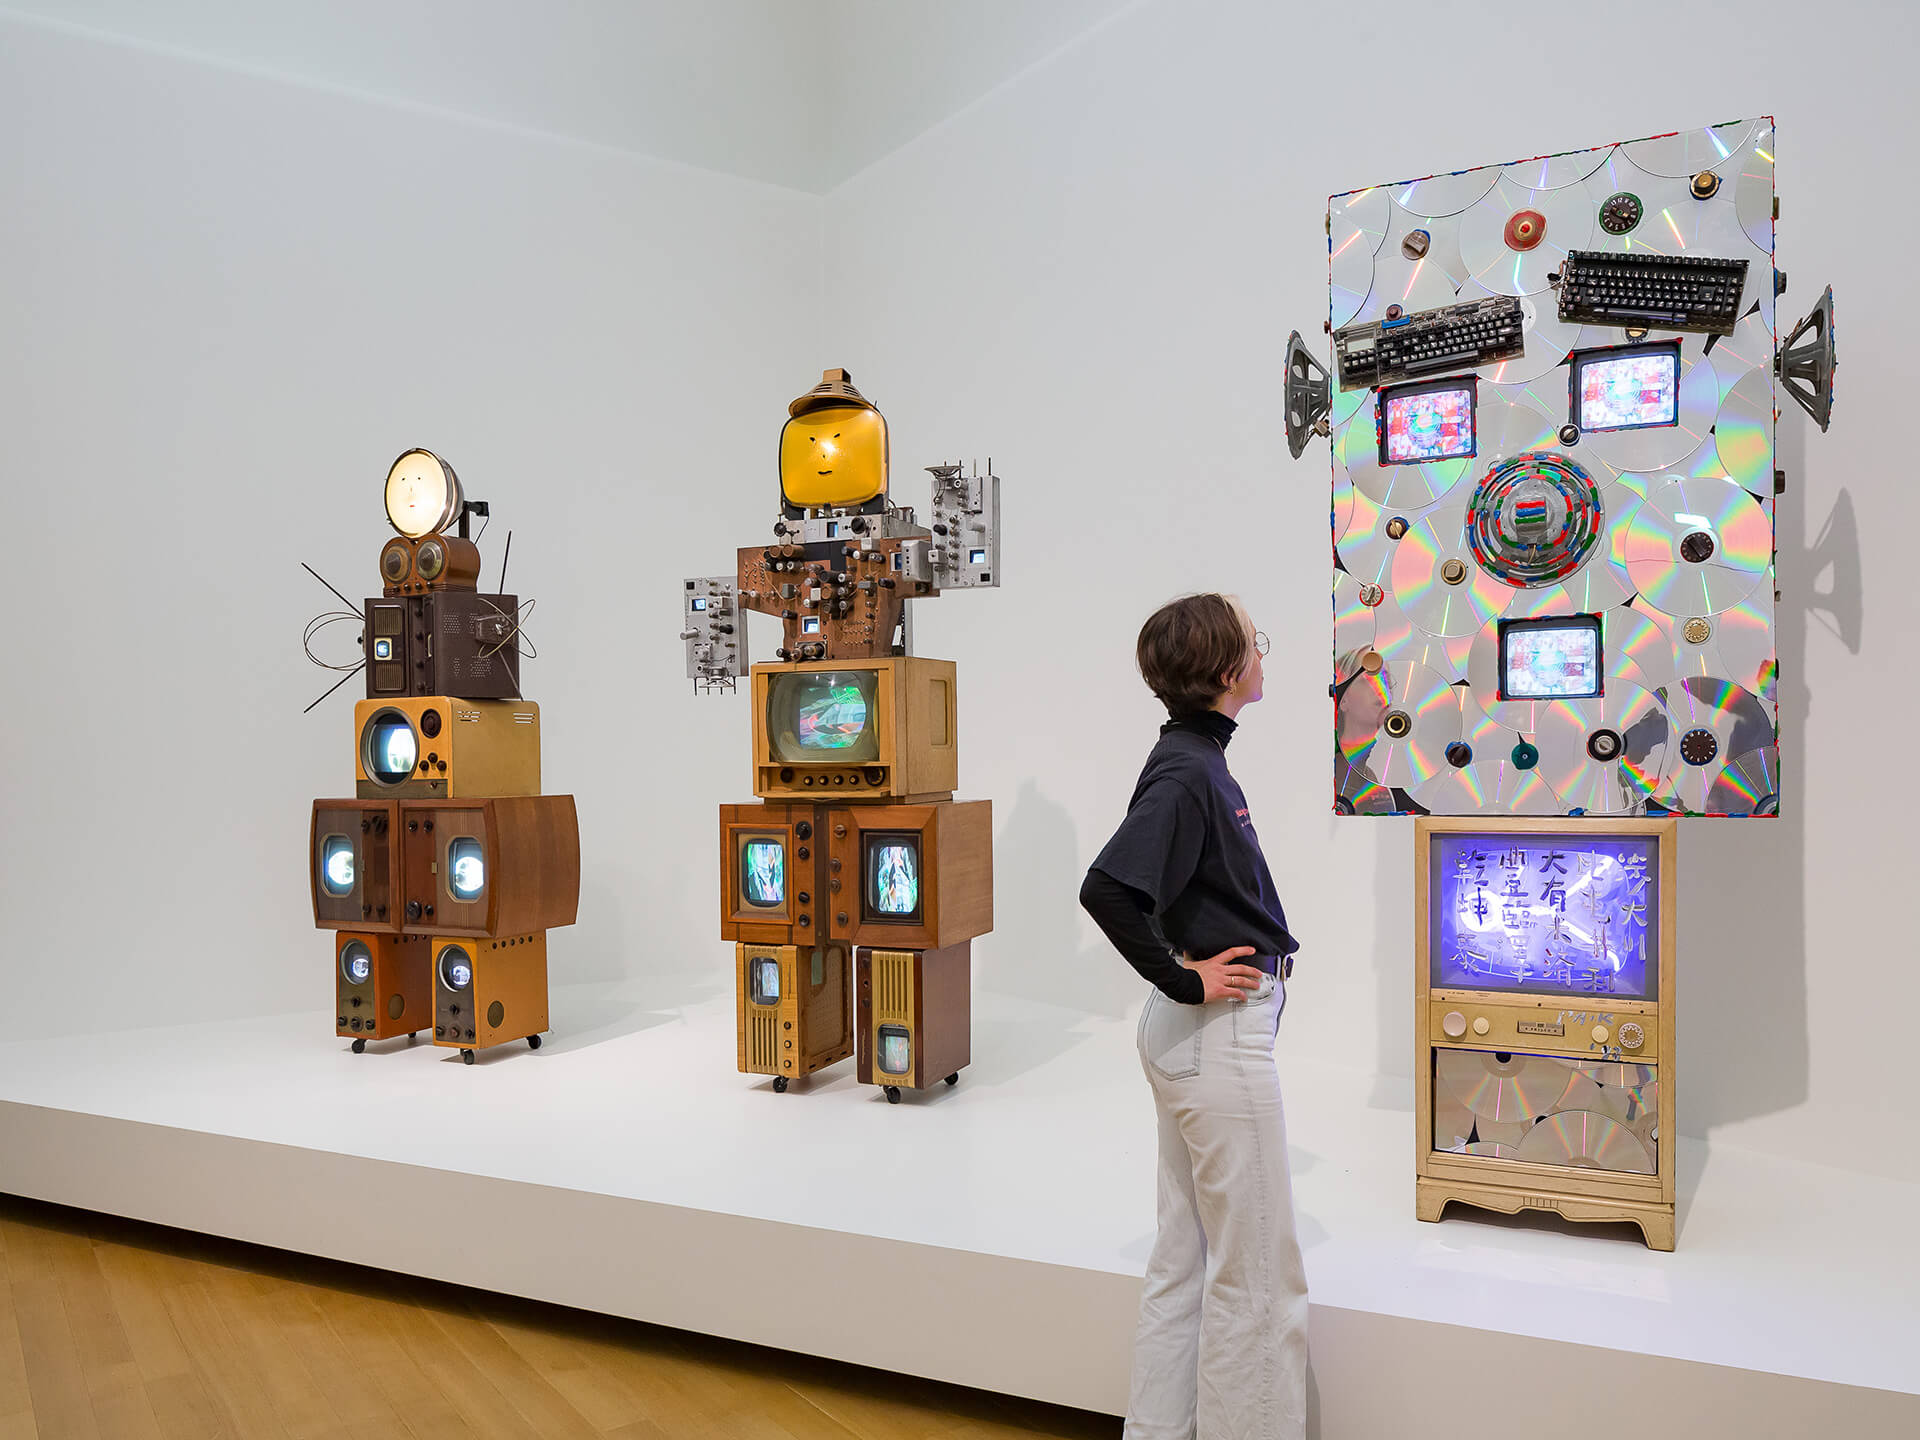 A viewer at The Future Is Now at Stedelijk Museum (2020) | The Future Is Now by Nam June Paik | STIRworld